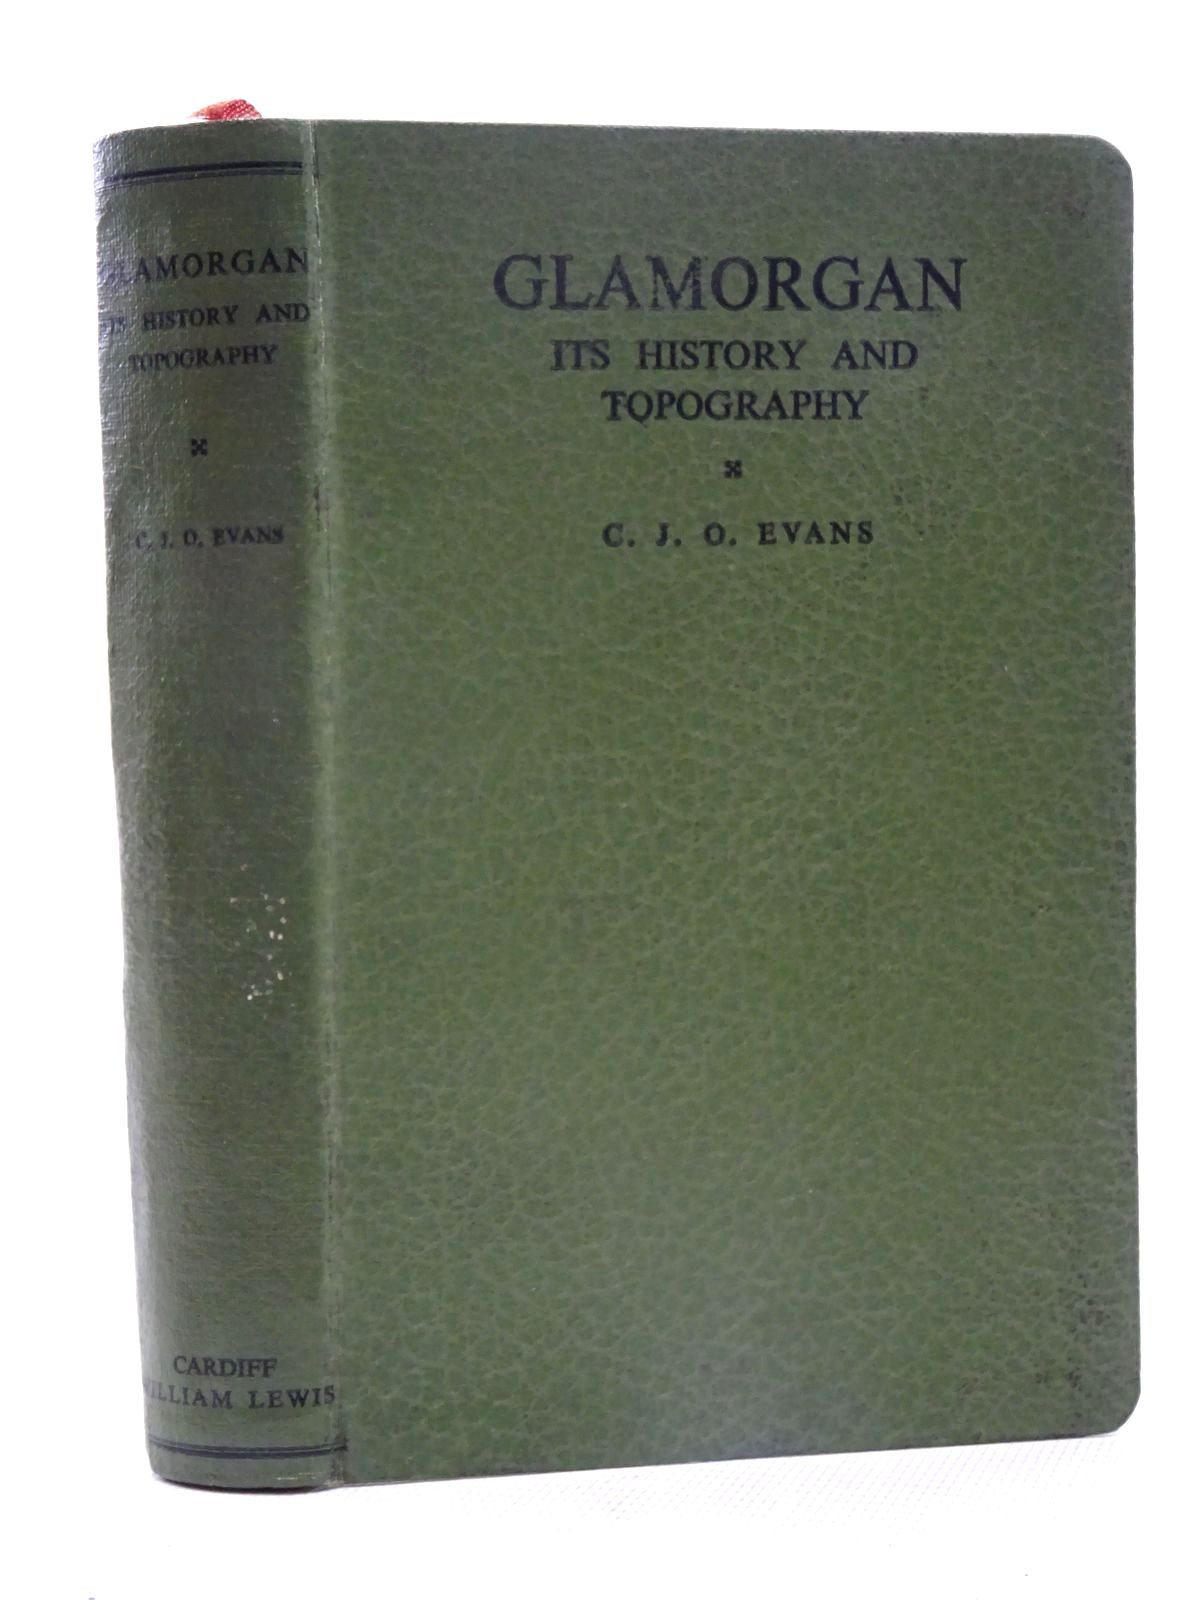 Photo of GLAMORGAN ITS HISTORY AND TOPOGRAPHY written by Evans, C.J.O. published by William Lewis (STOCK CODE: 1610687)  for sale by Stella & Rose's Books